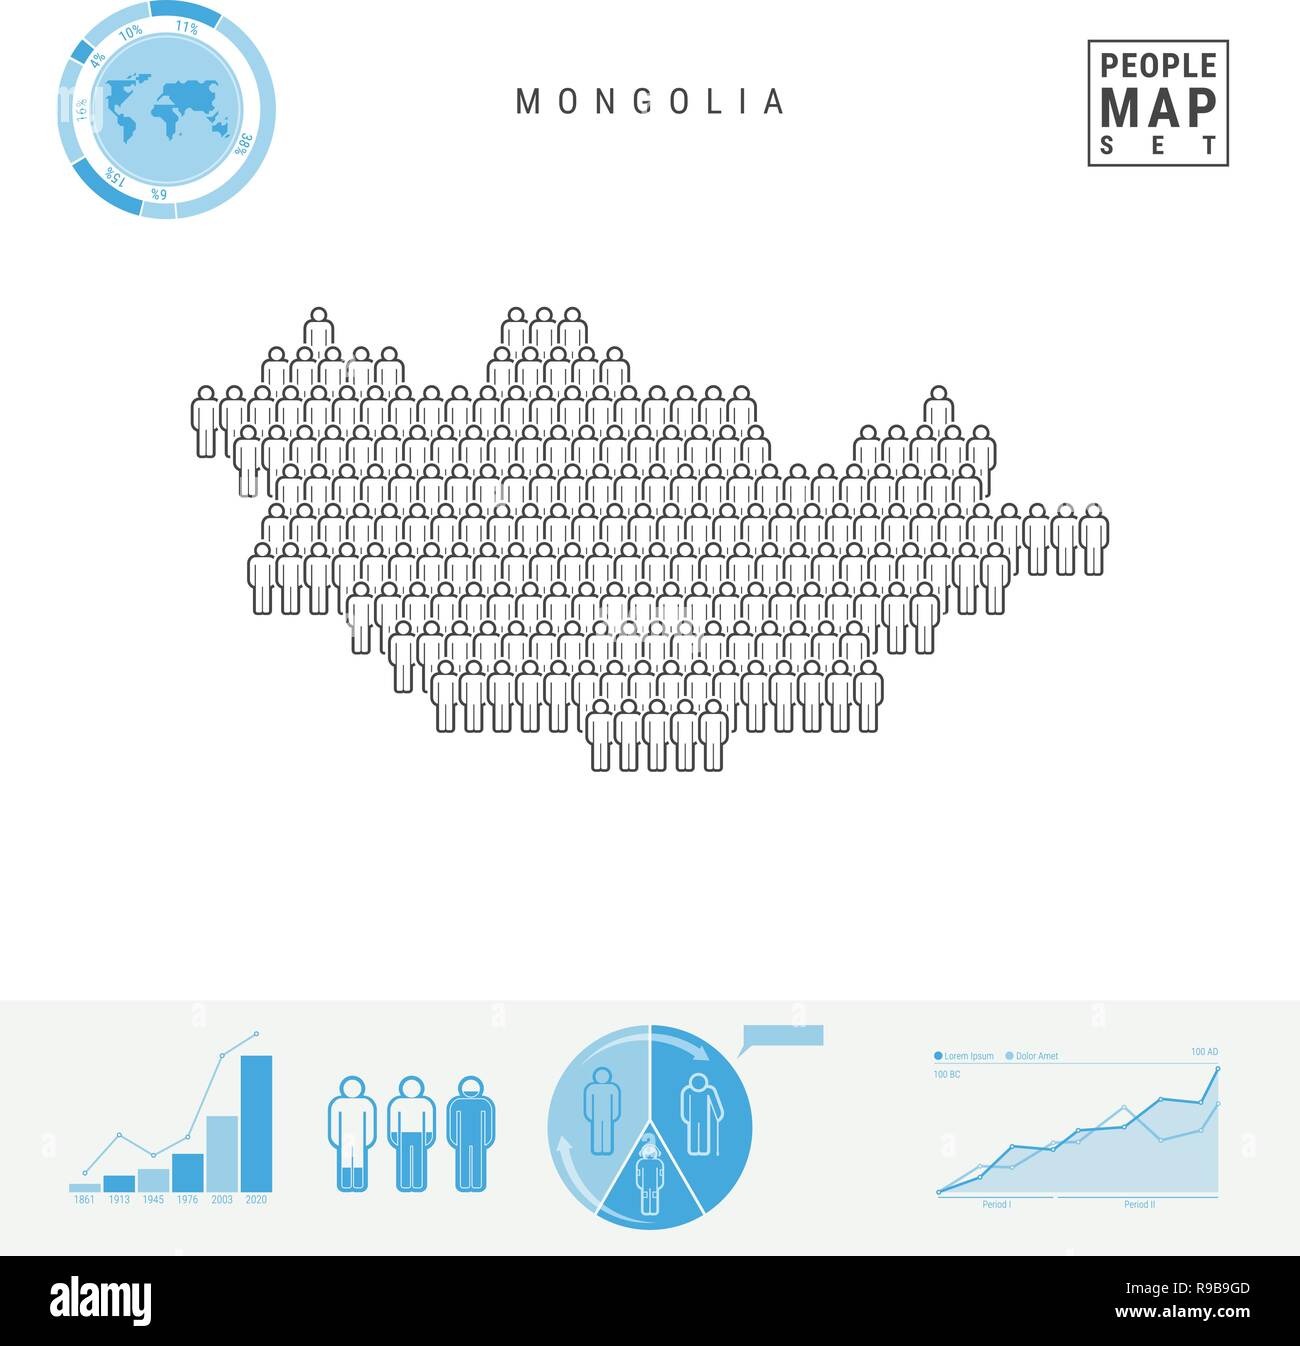 Mongolia People Icon Map. People Crowd in the Shape of a Map of Mongolia. Stylized Silhouette of Mongolia. Population Growth and Aging Infographic Ele - Stock Vector